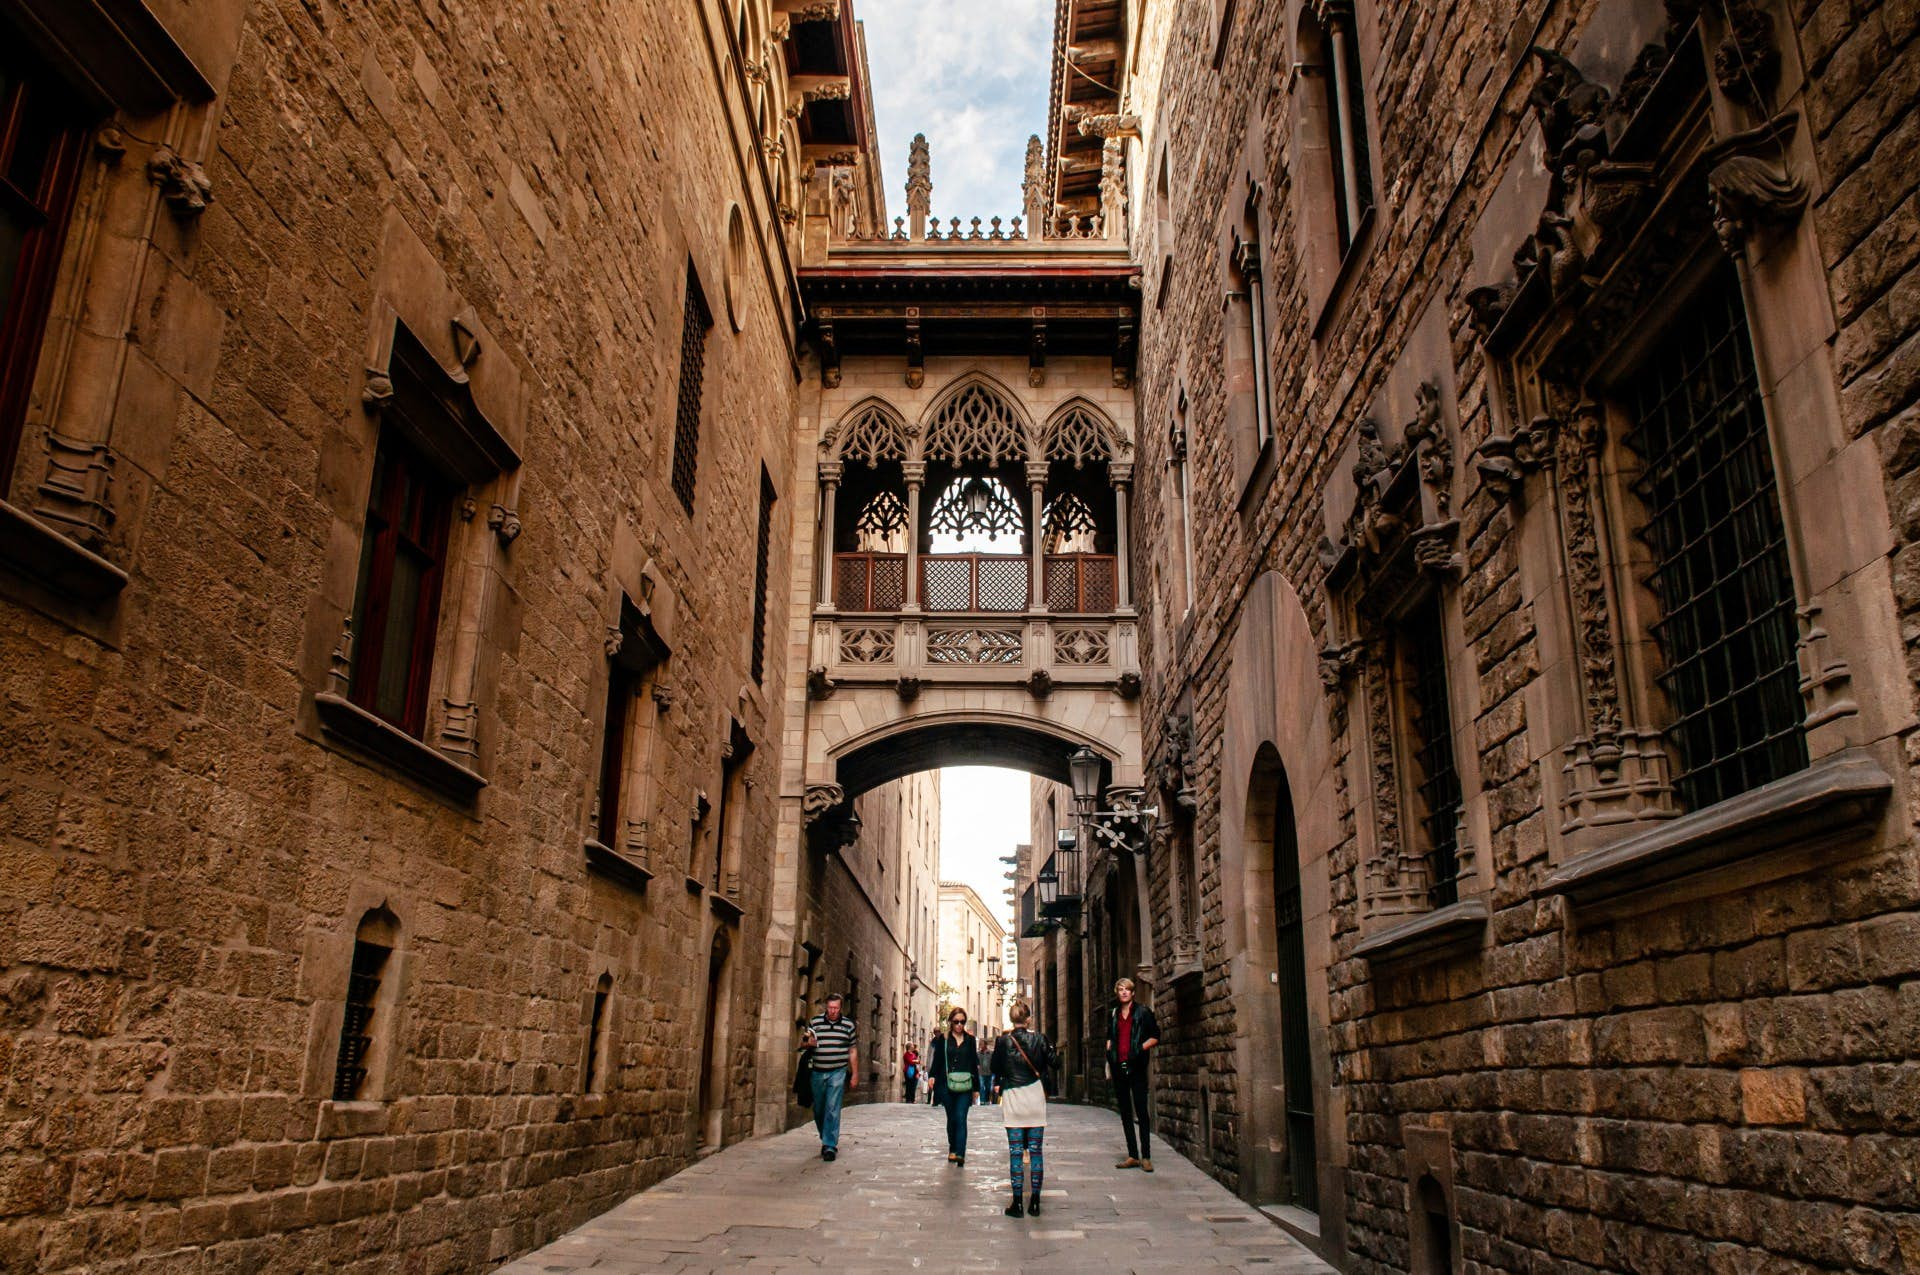 Ghosts of Barcelona: The Haunting Stories image